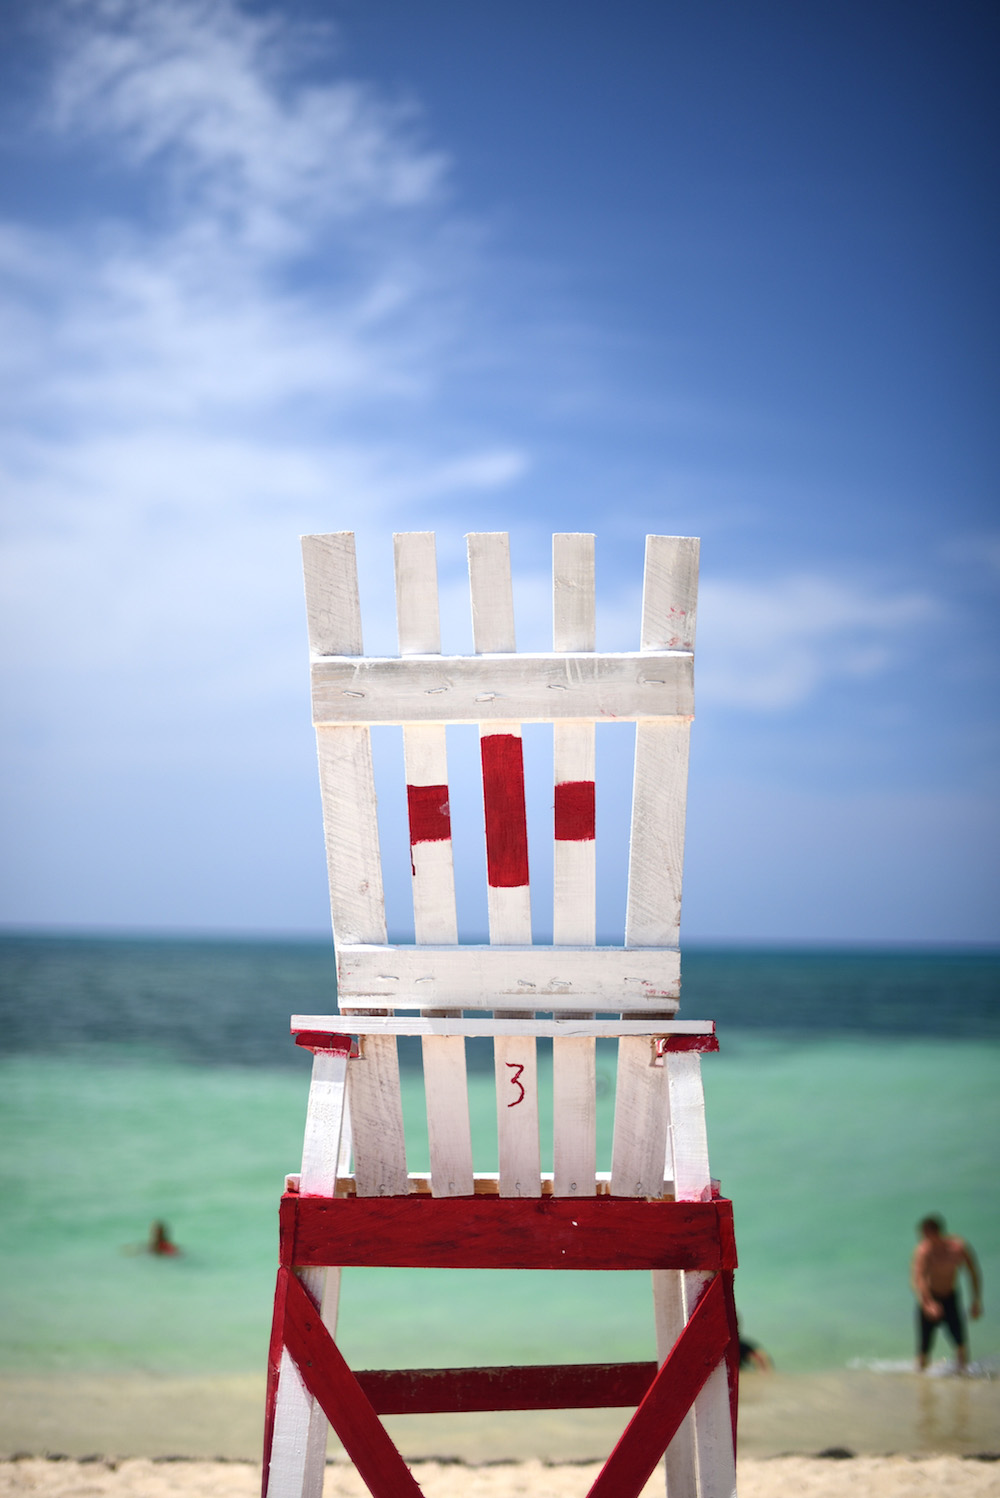 Cuba travel pictures lifeguard chair